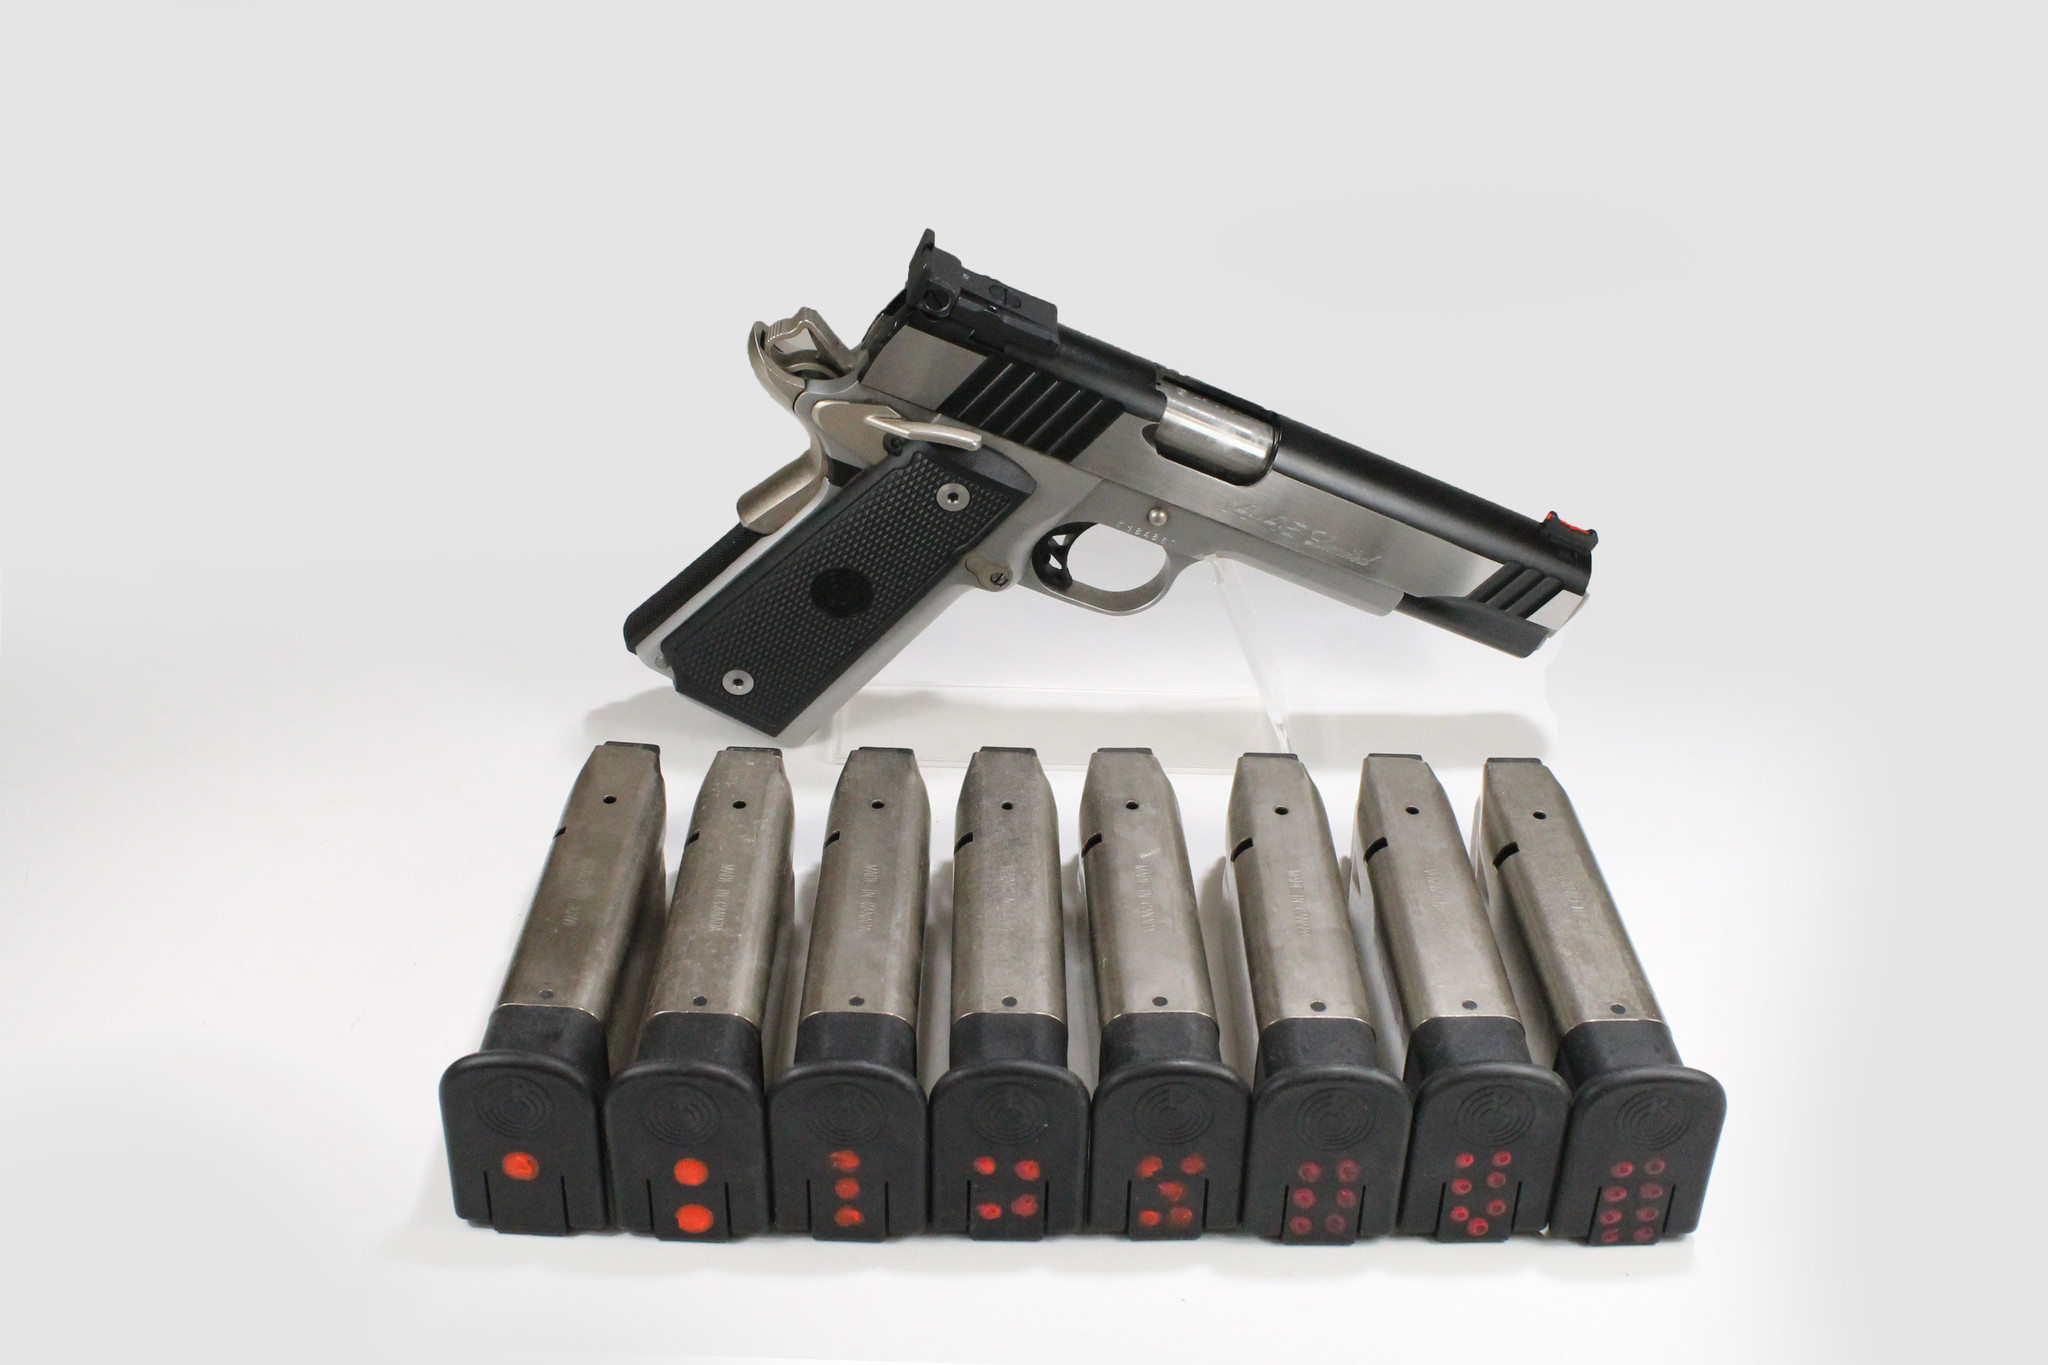 PARA CHG-6693 USED Para Ordnance Hi Cap 14.45 Limited, 45ACP, Made in Canada, 8 Double Stacked Magazines